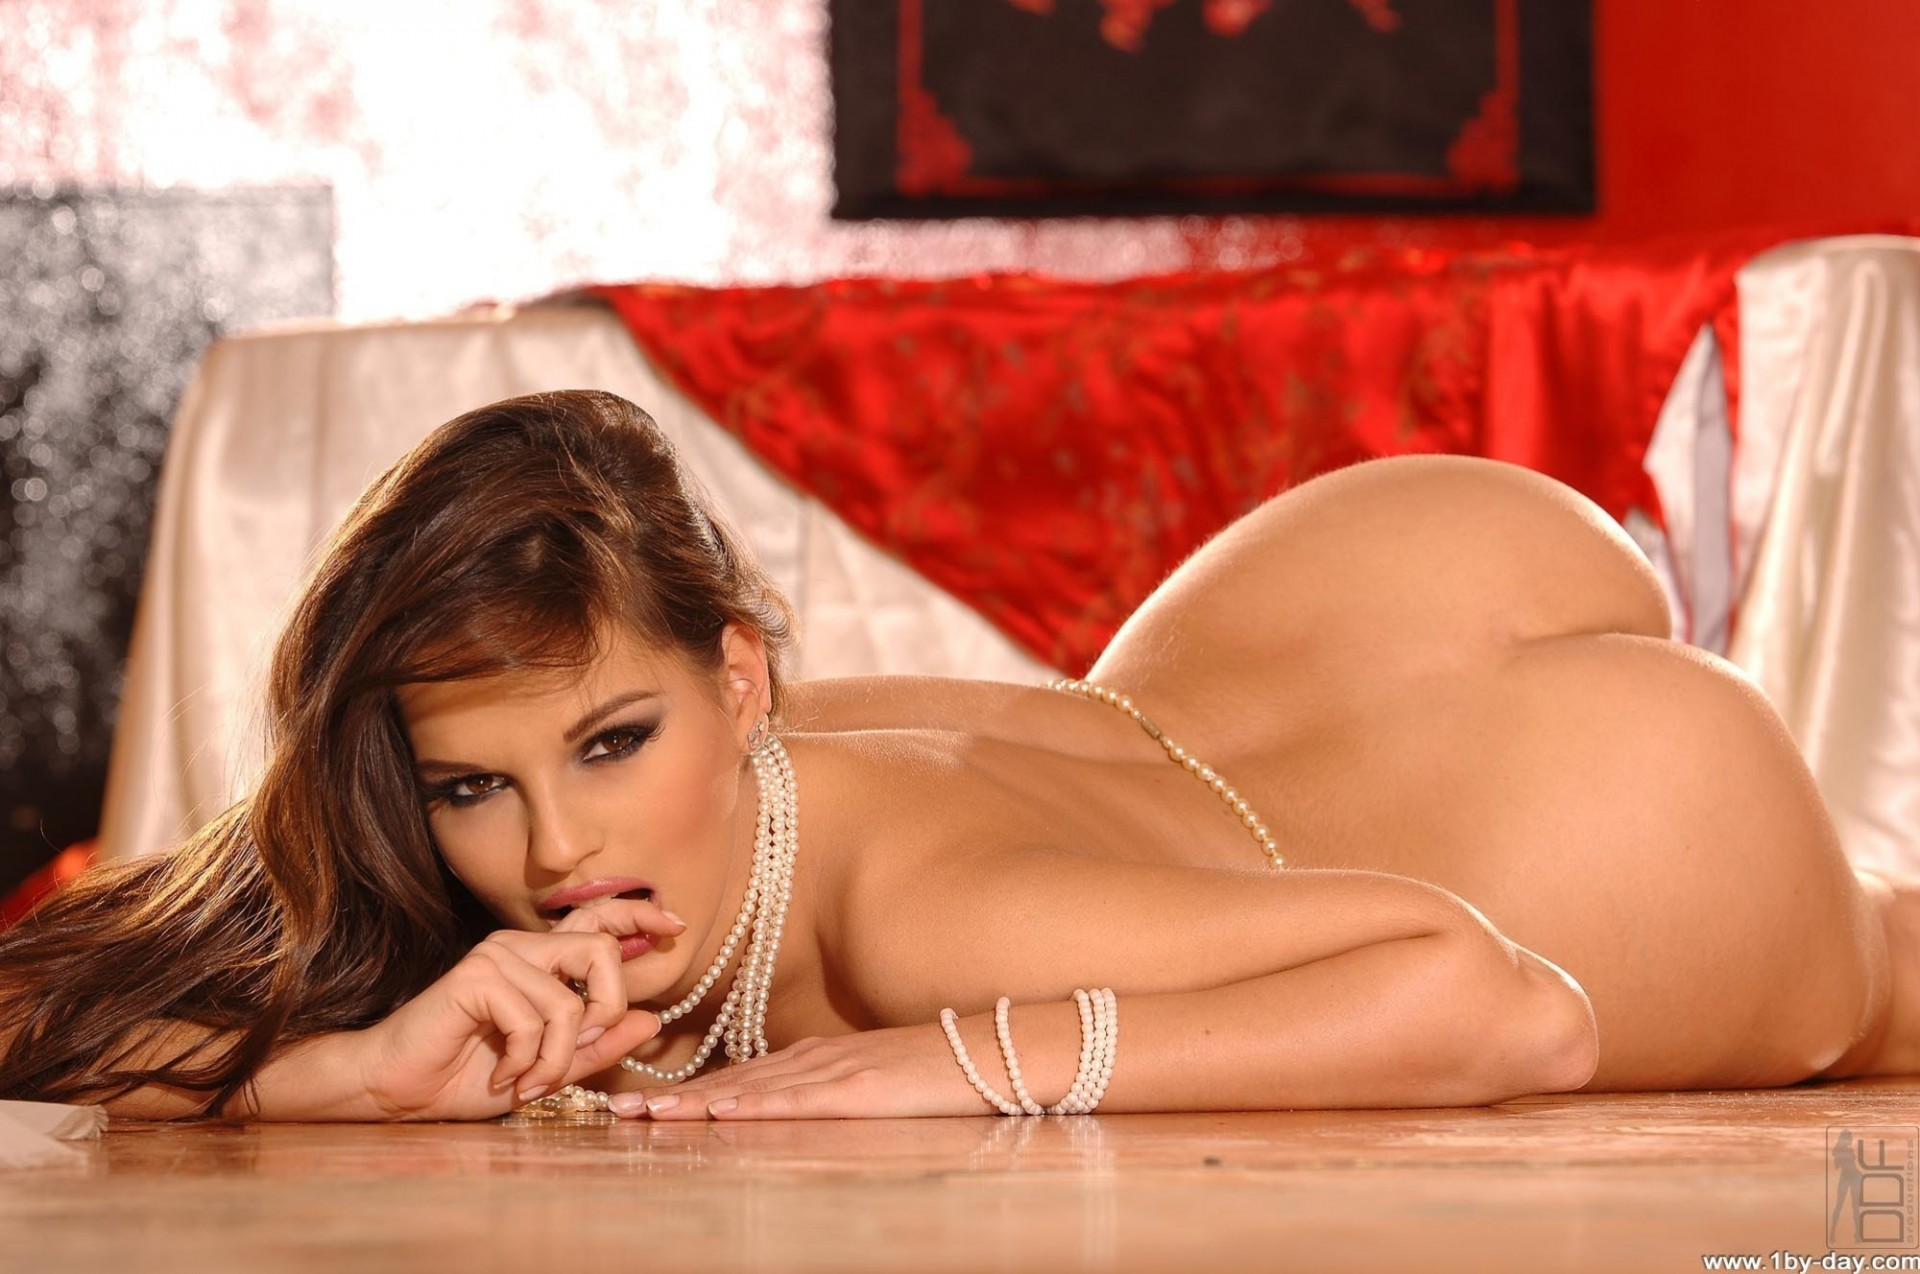 angel-hot-sexy-erotik-dream